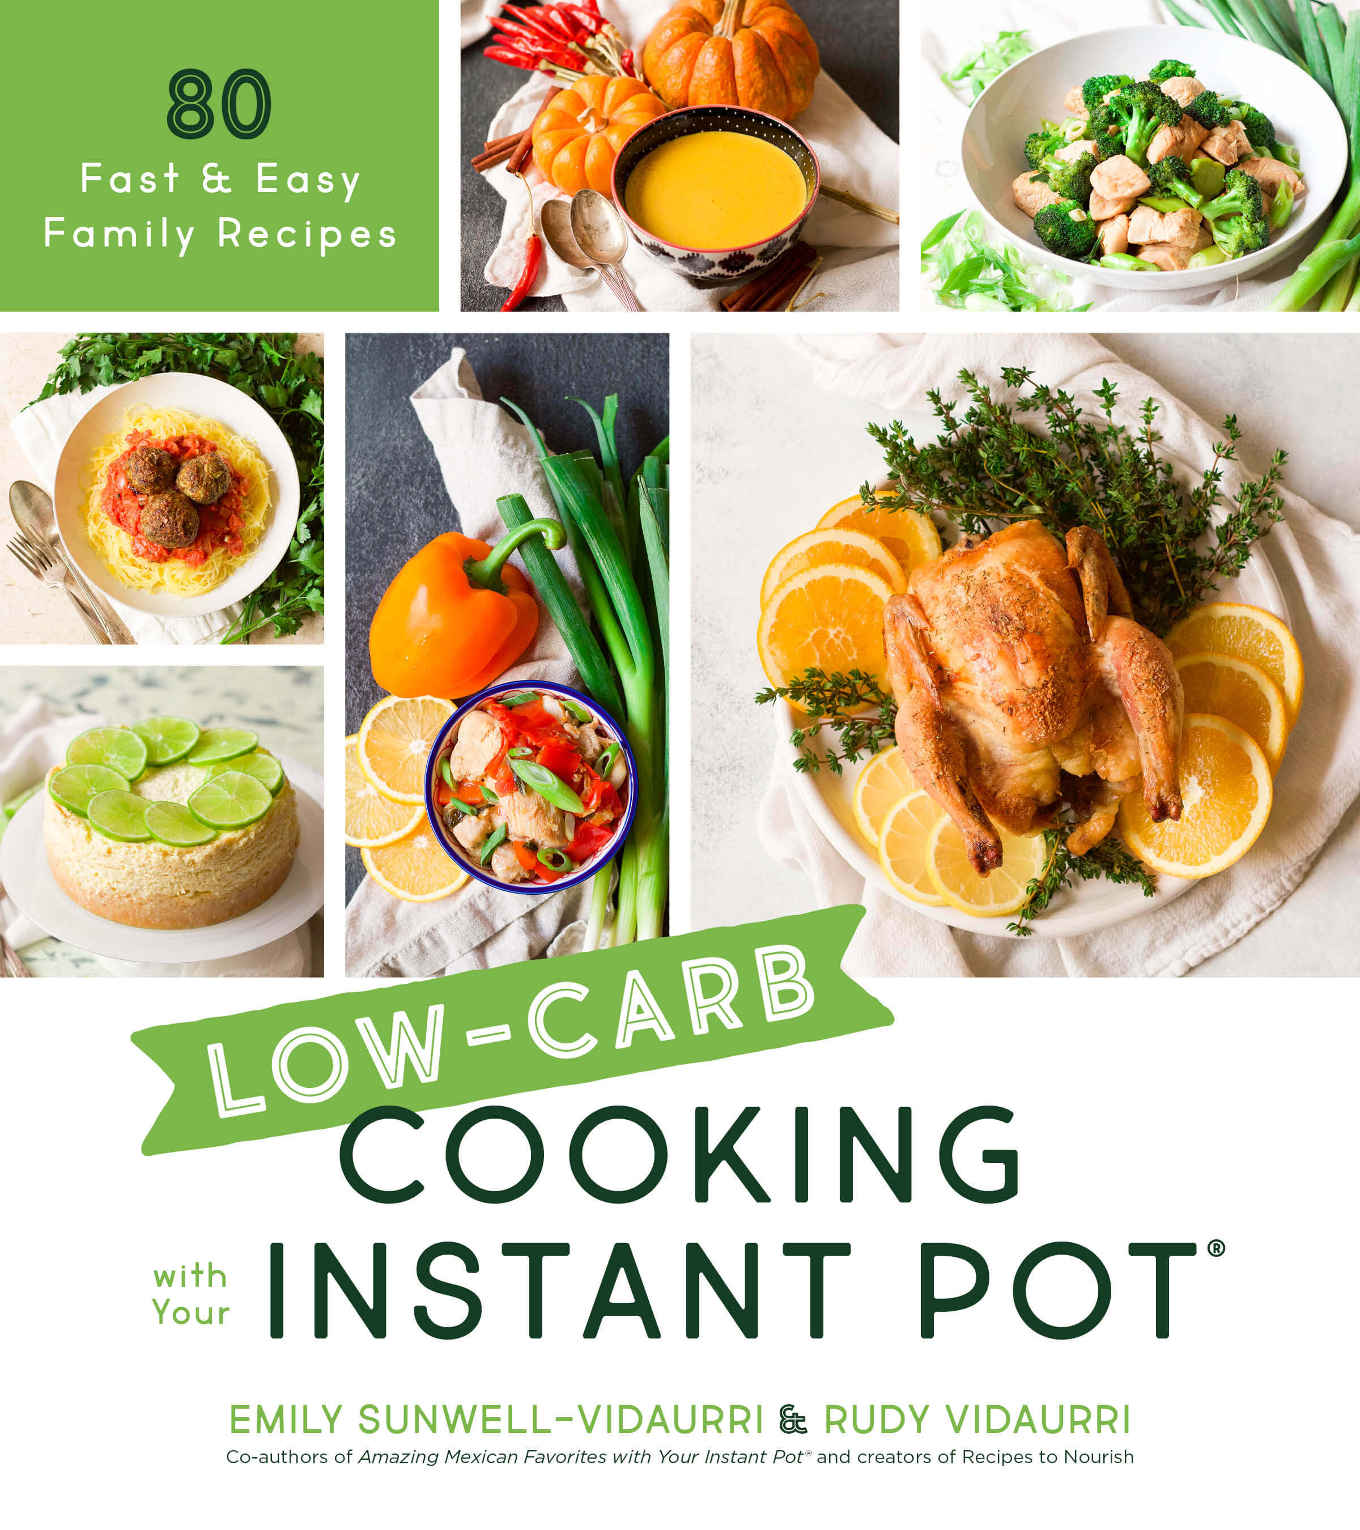 Book cover of low-carb cooking with your instant pot